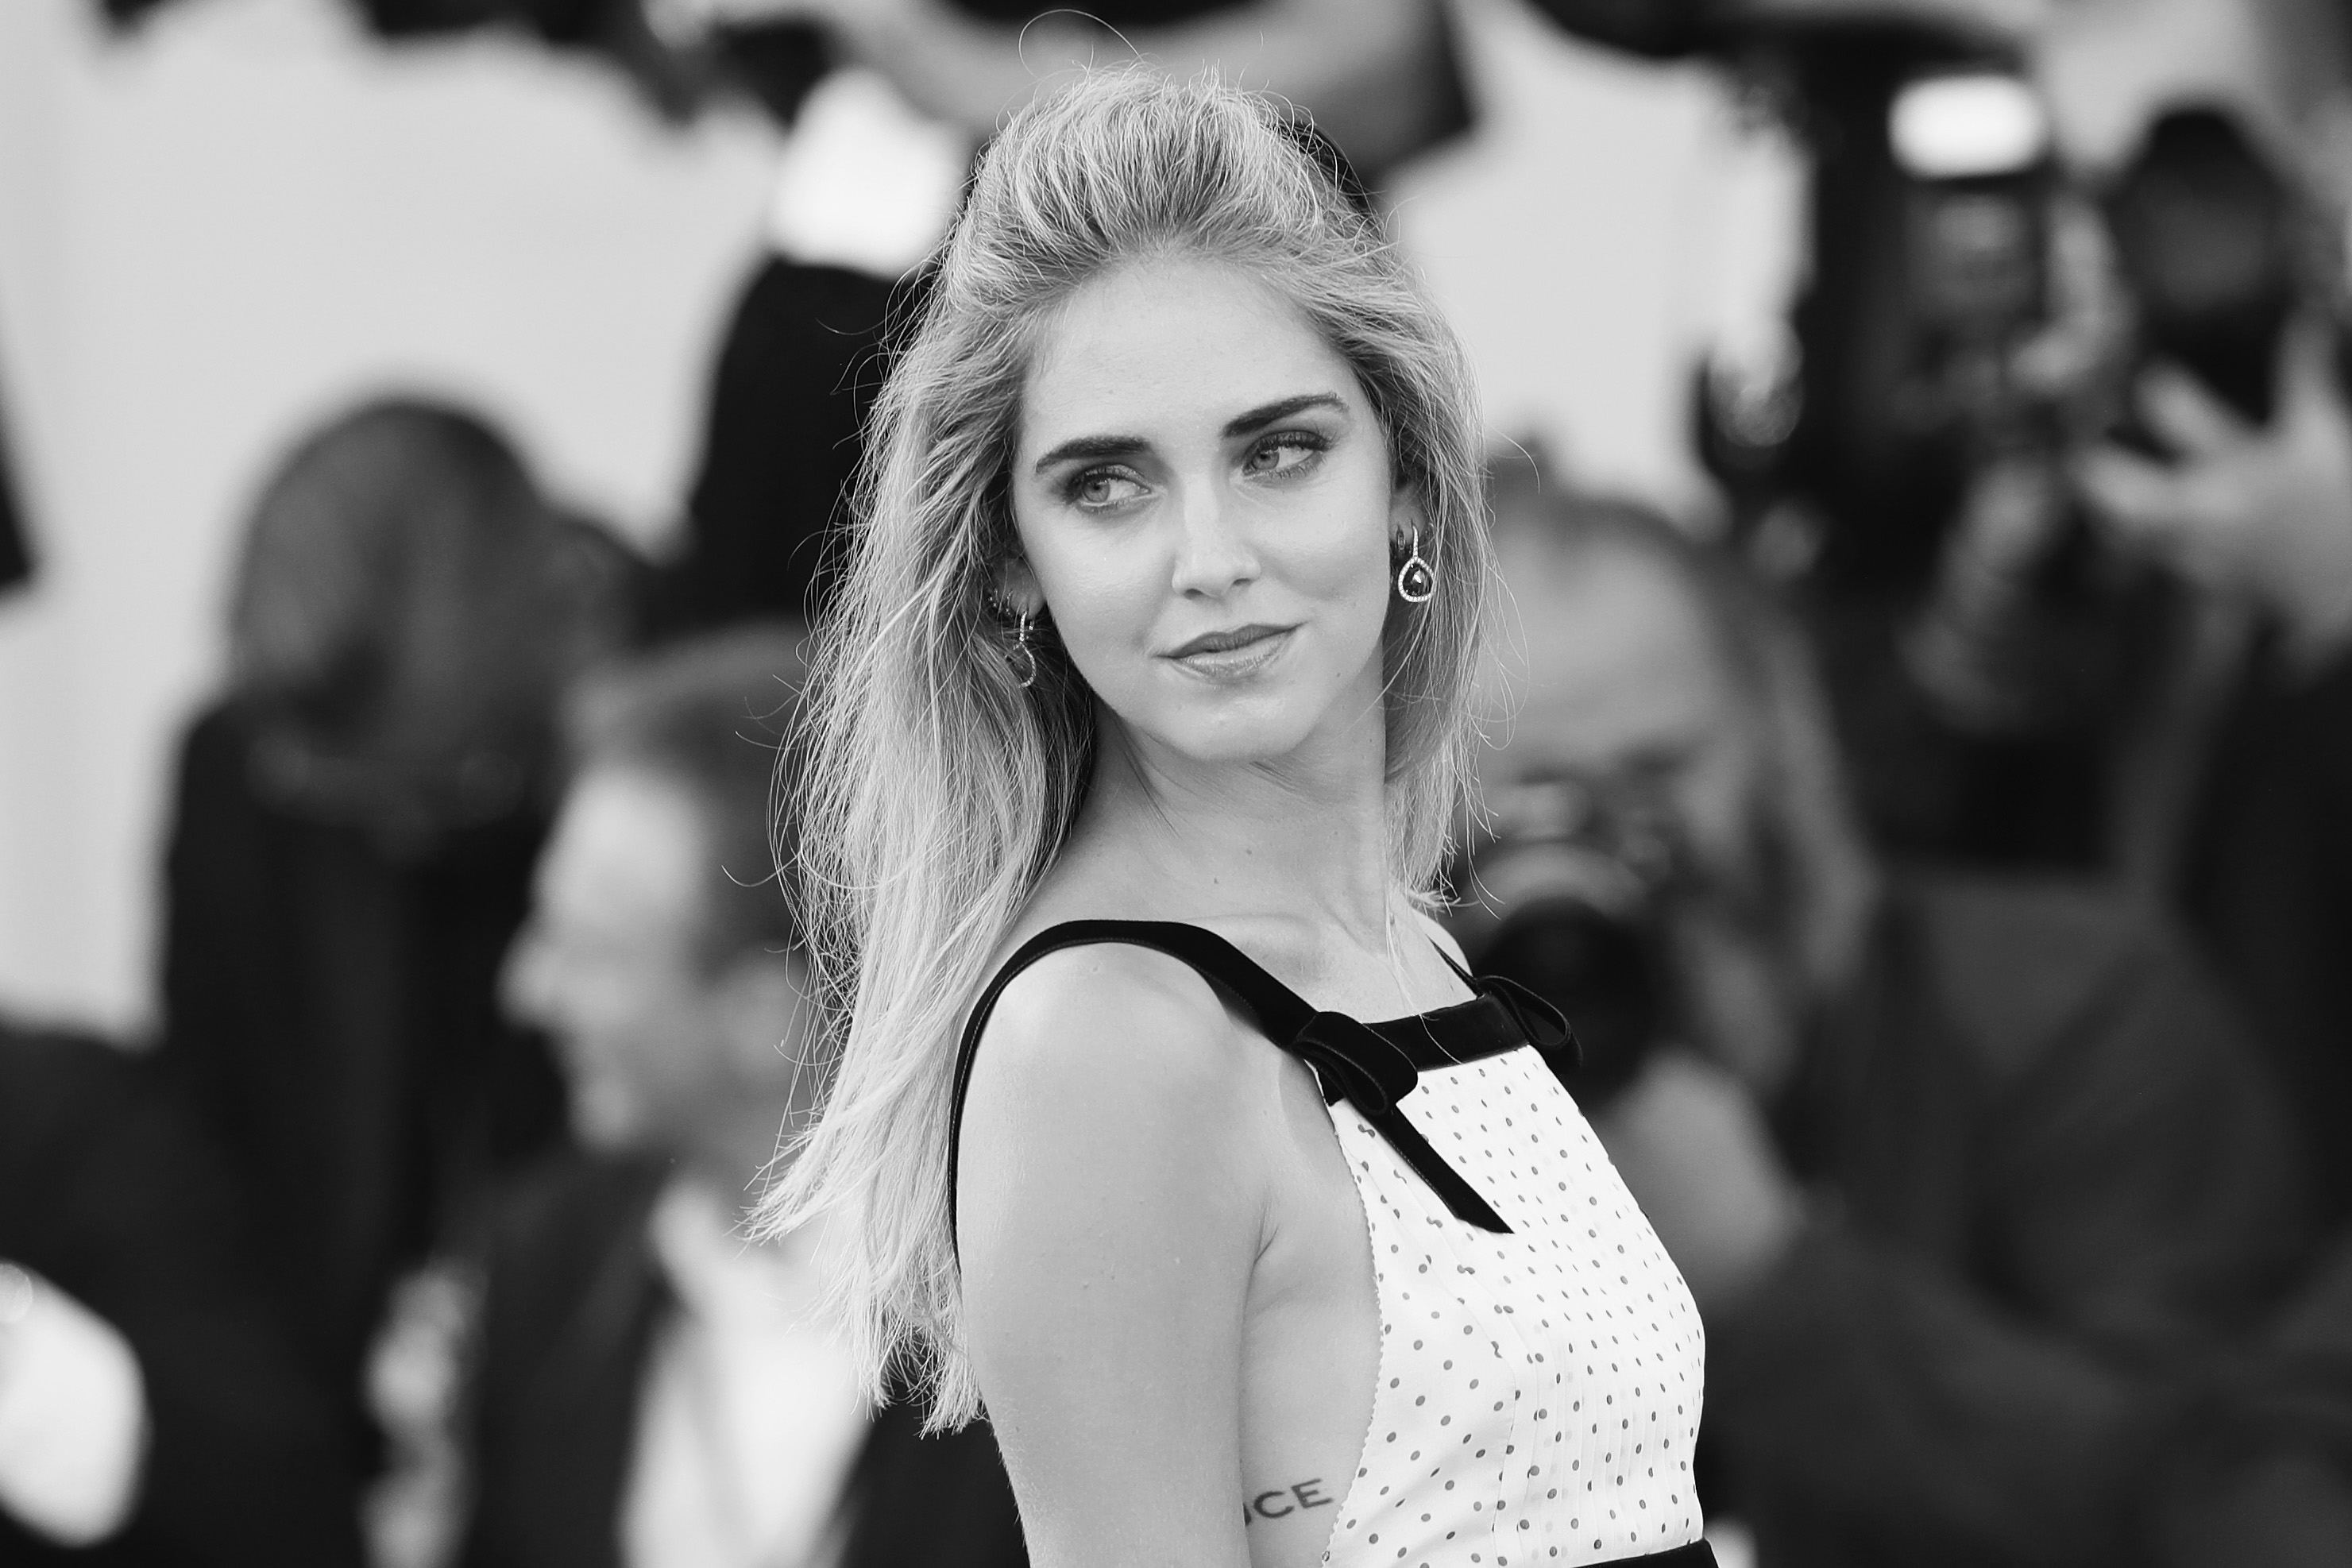 VENICE, ITALY - SEPTEMBER 03: (EDITORS NOTE: This image has been converted in black and white) Chiara Ferragni attends the premiere of 'The Young Pope' during the 73rd Venice Film Festival at on September 3, 2016 in Venice, Italy.  (Photo by Vittorio Zunino Celotto/Getty Images)